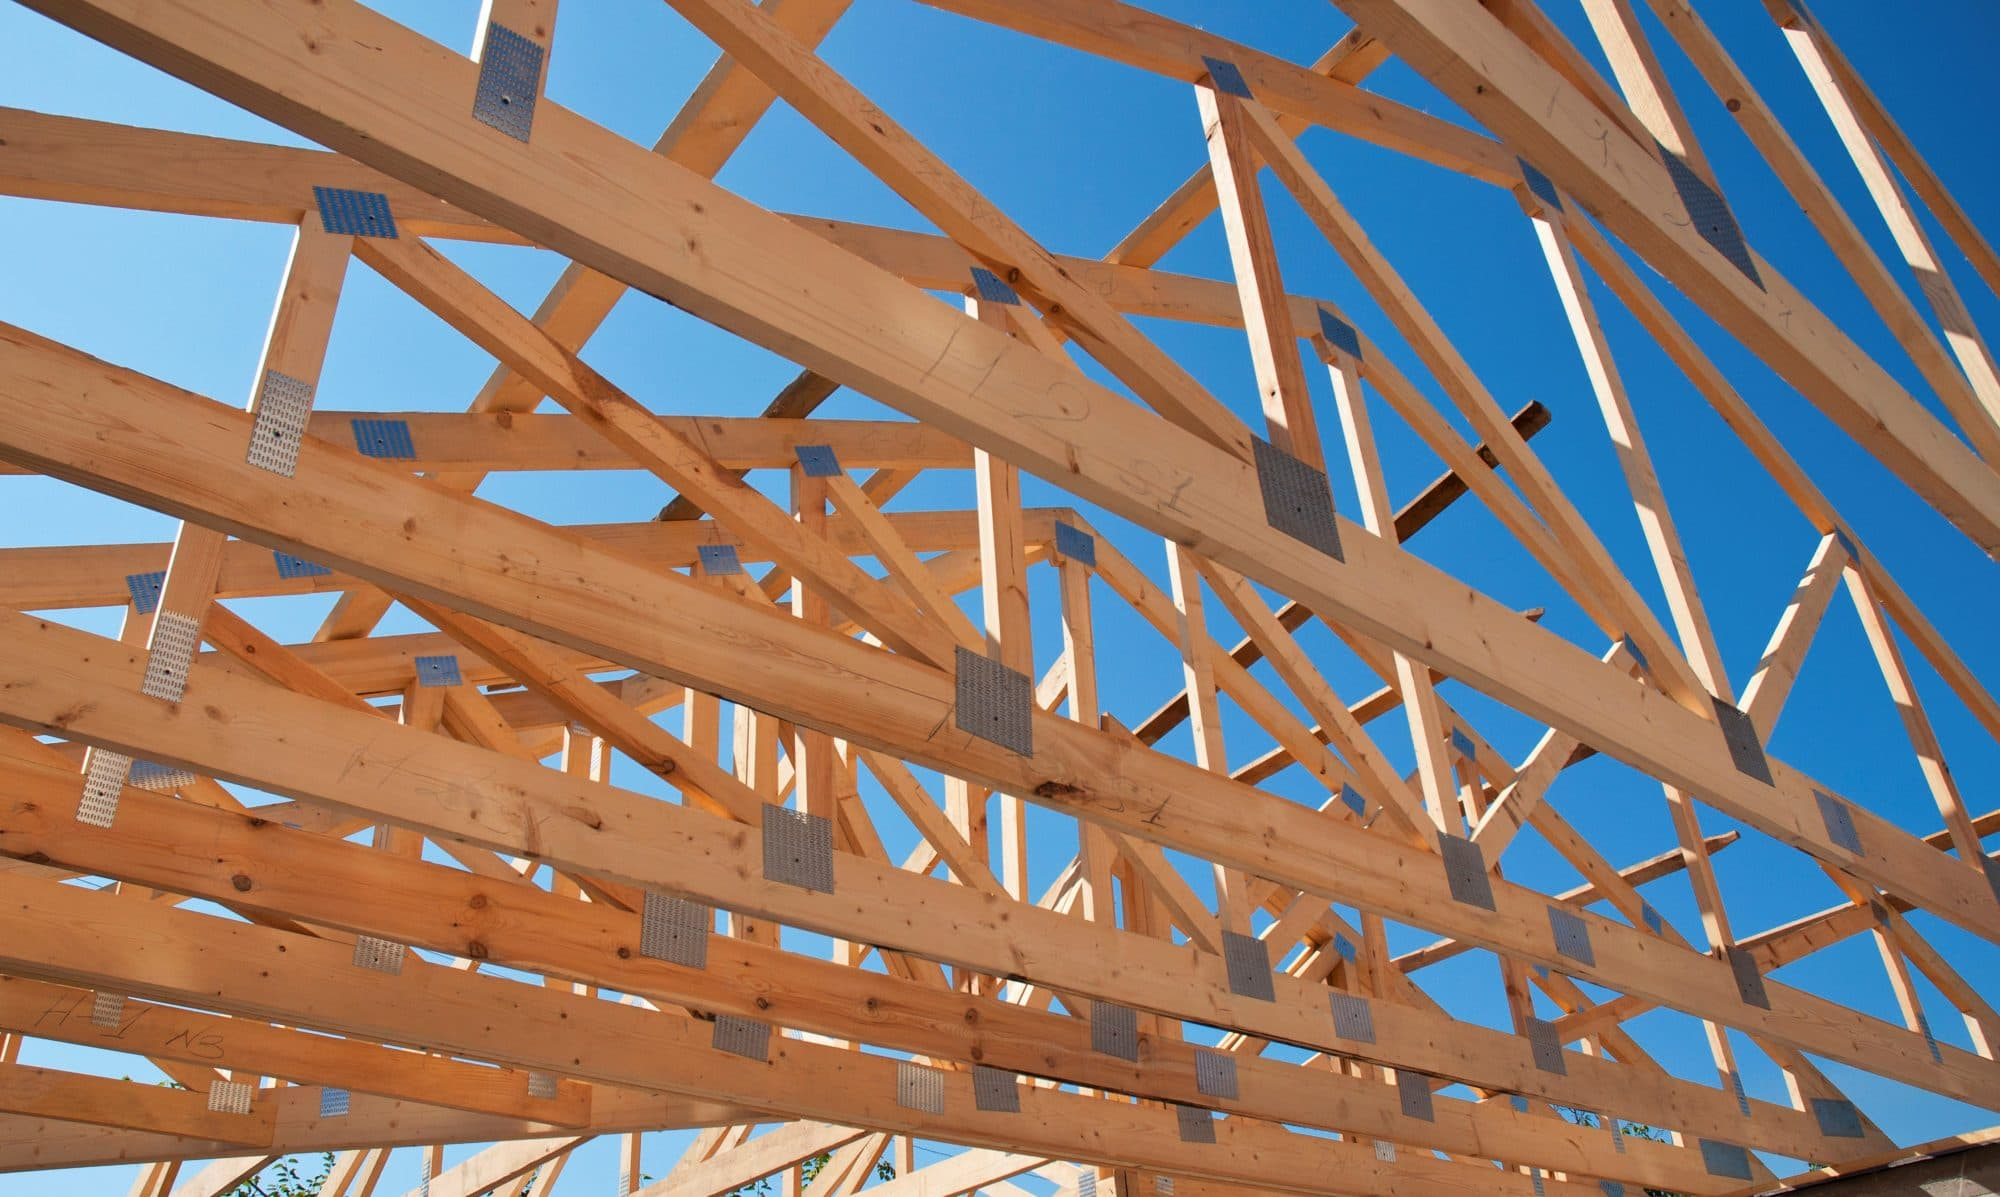 Timber framing for a house